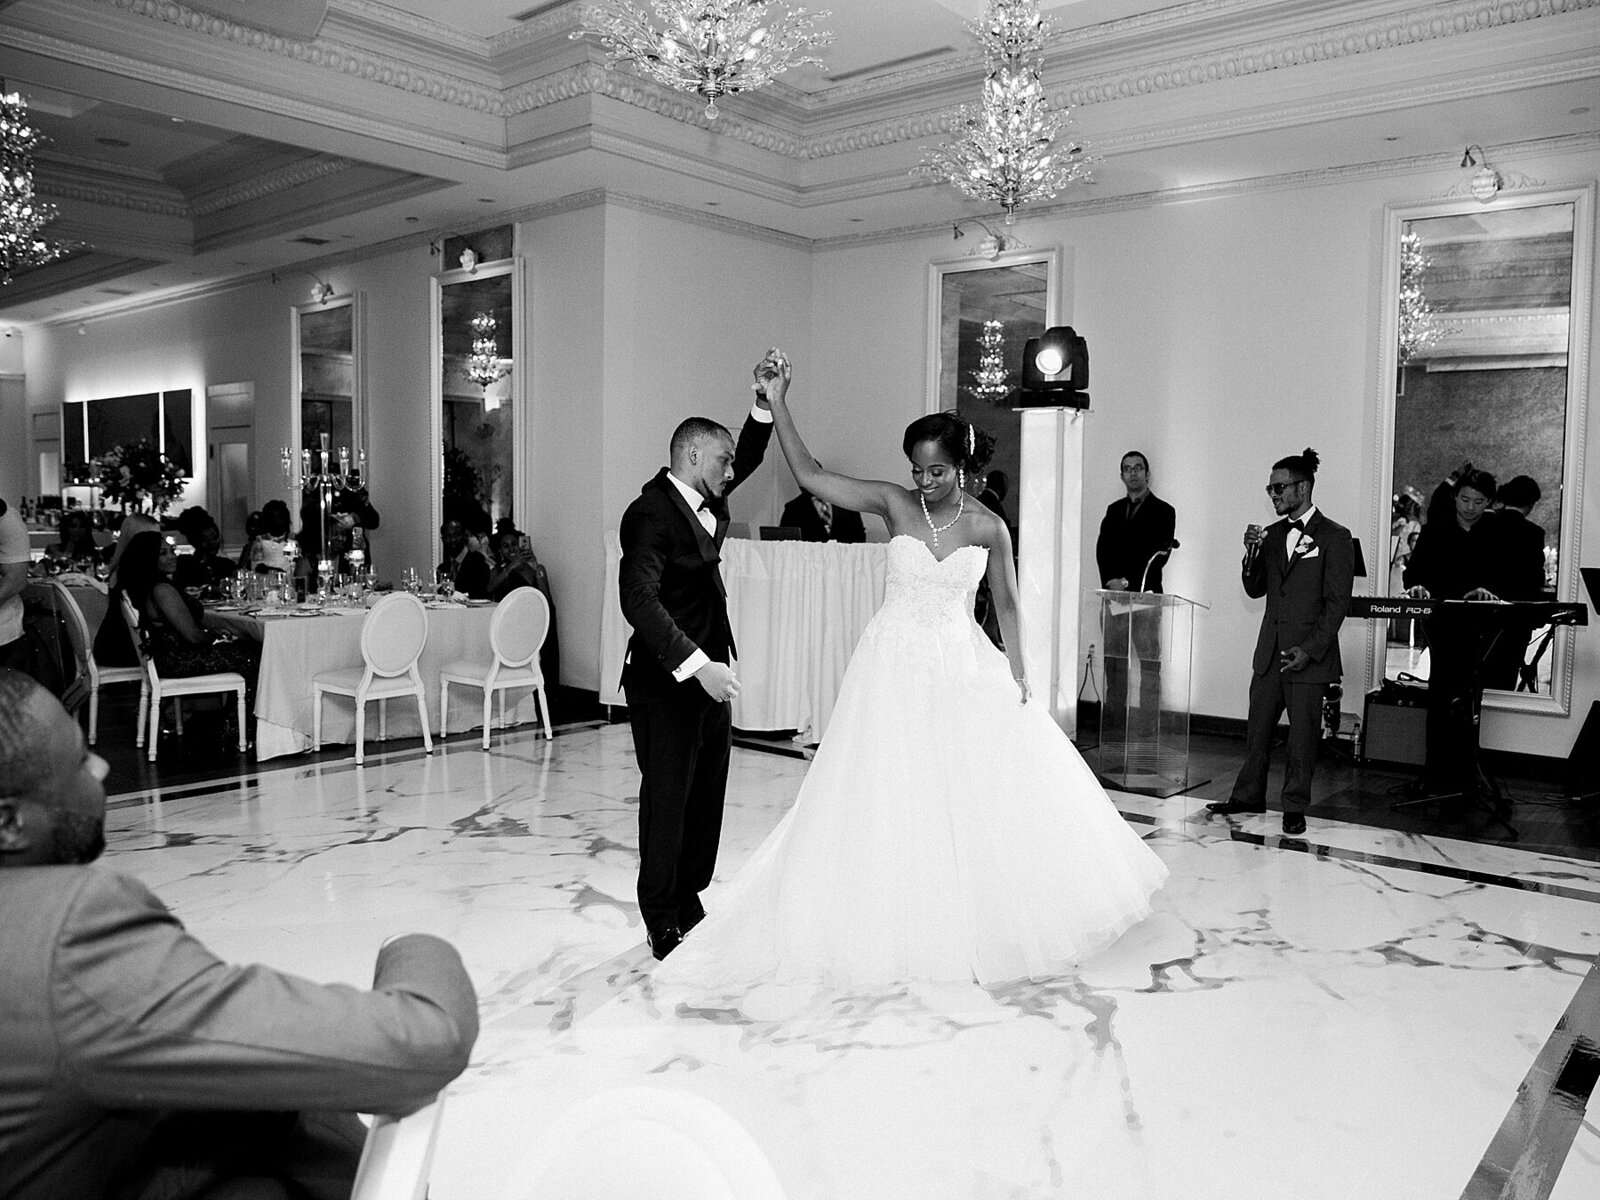 university-toronto-knox-wedding-rosewater-room-photographer_0013